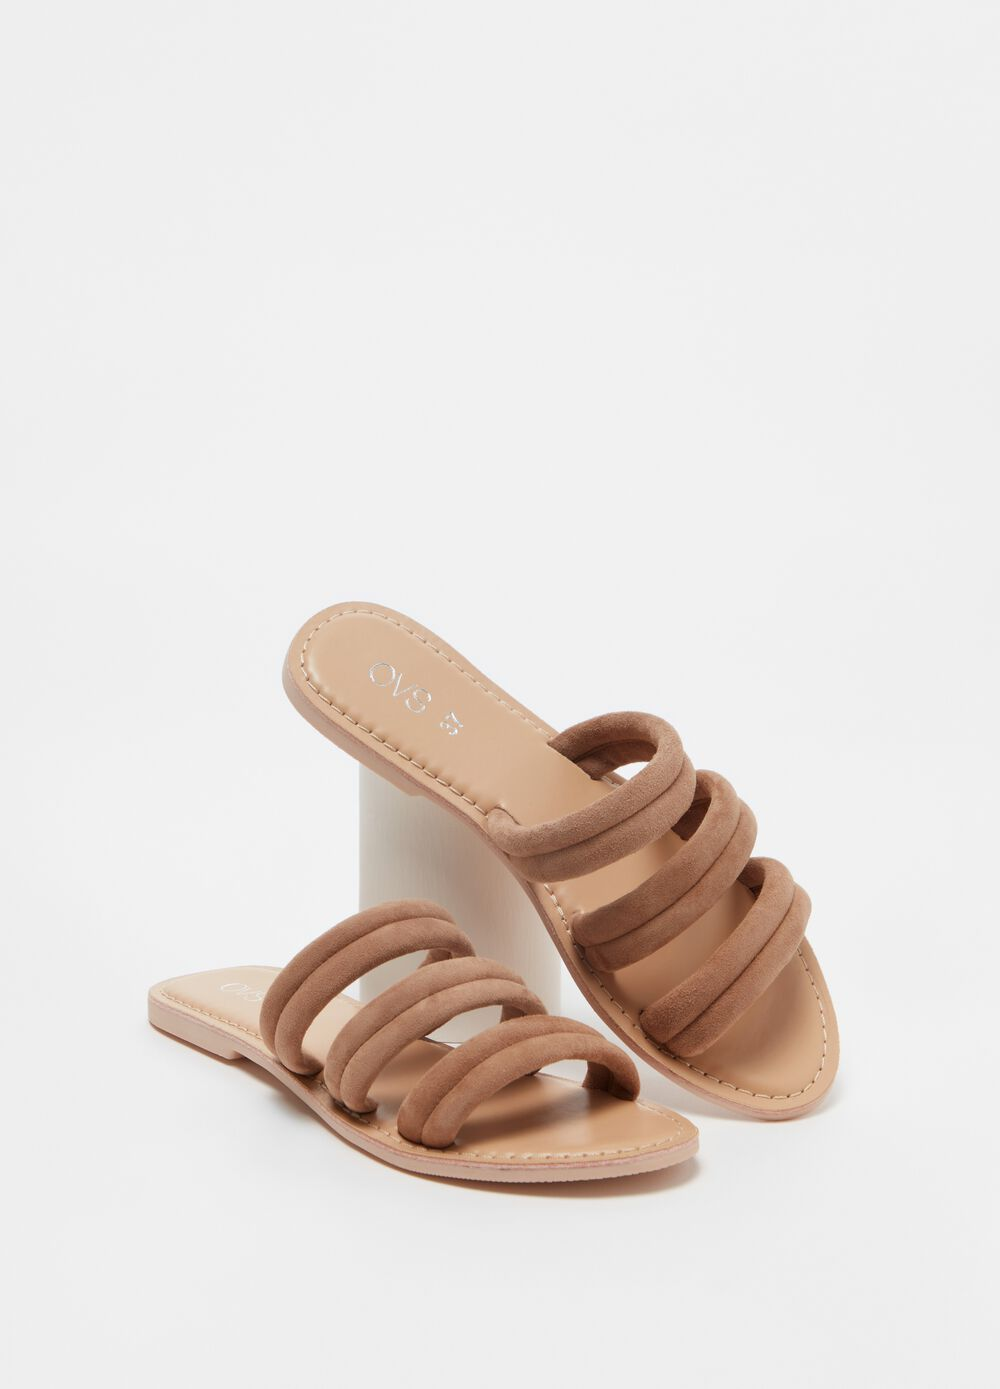 Suede sandals with bands across foot